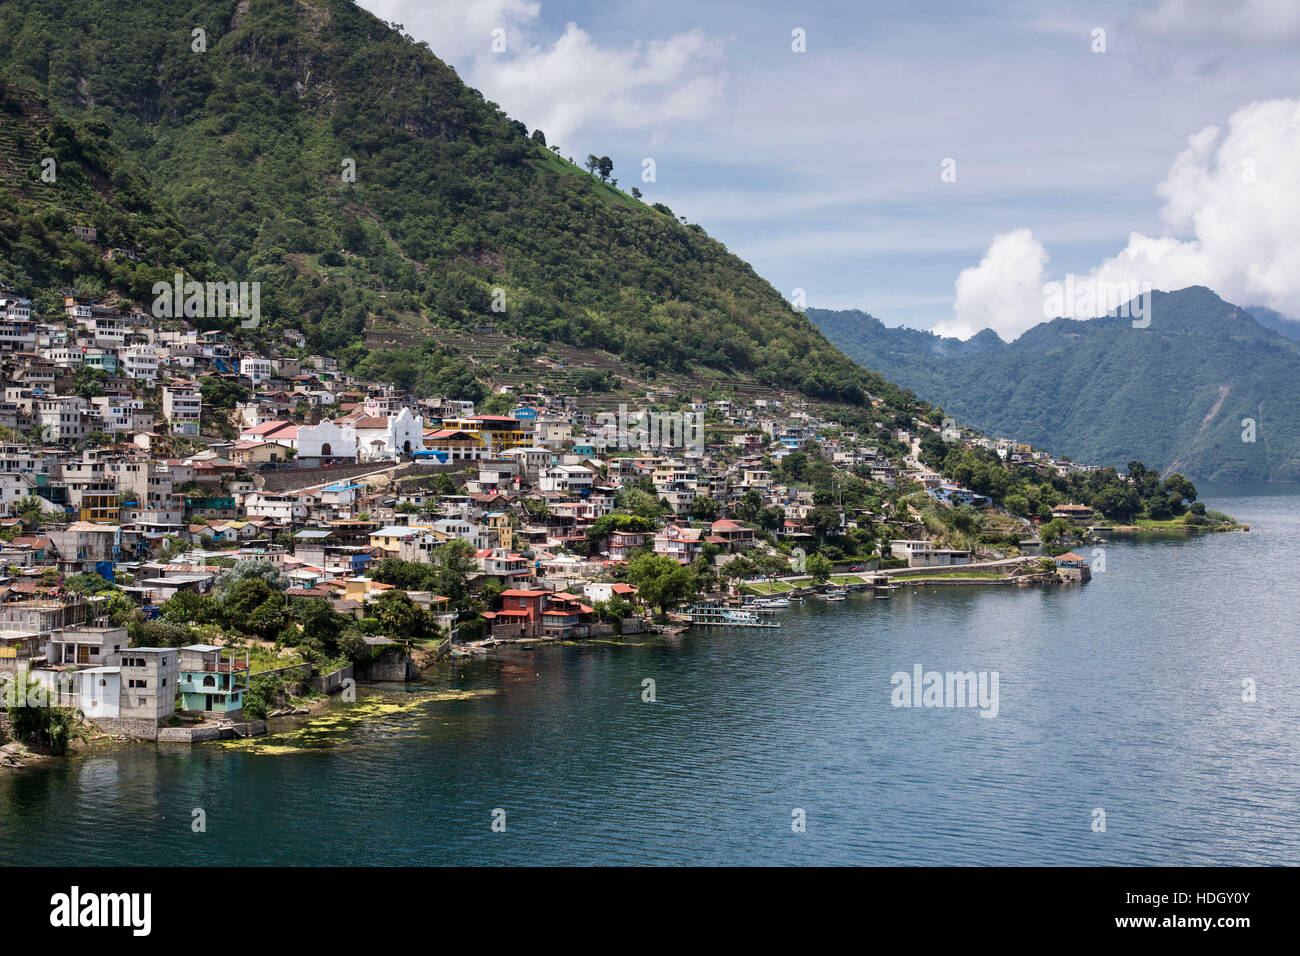 Distant view of San Antonio Palopo, Guatemala, on the shore of Lake Atitlan.  Steep hillsides drop into the lake, which is an extinict volcanic crater Stock Photo